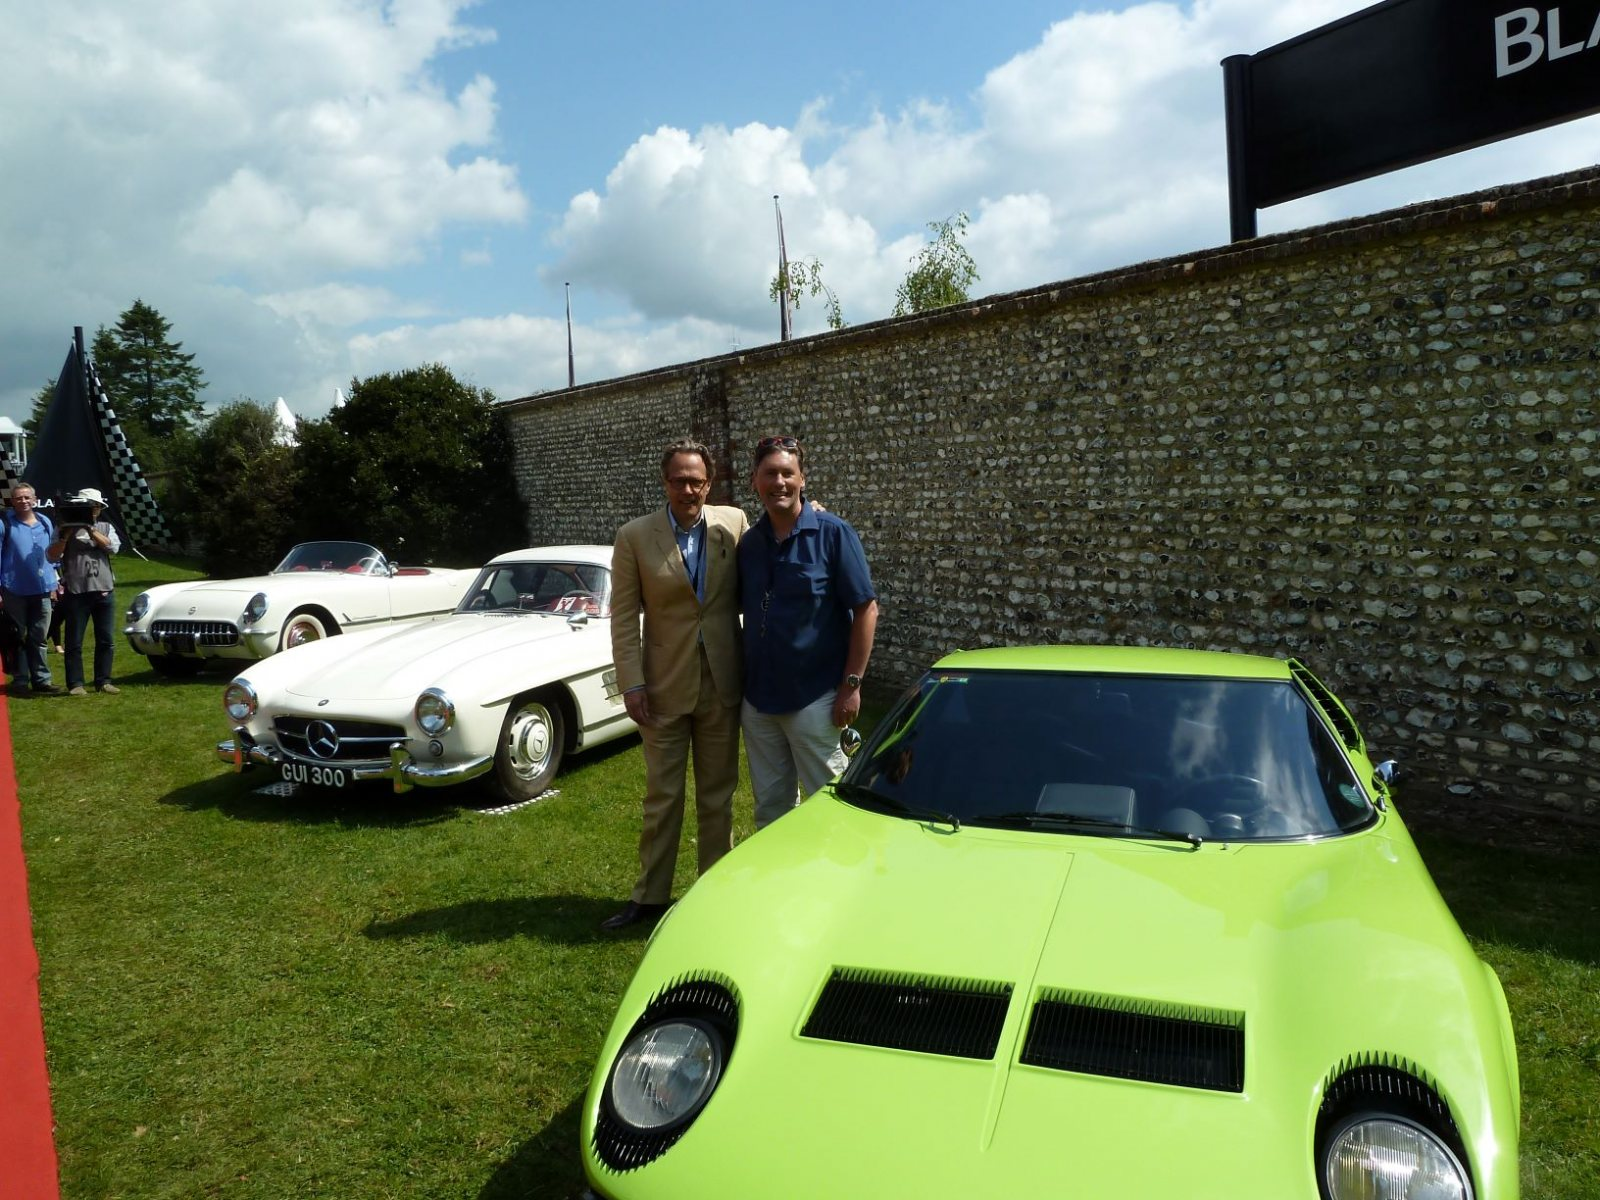 The-Duke-of-Richmond-with-Iain-Tyrrell-and-a-Miura